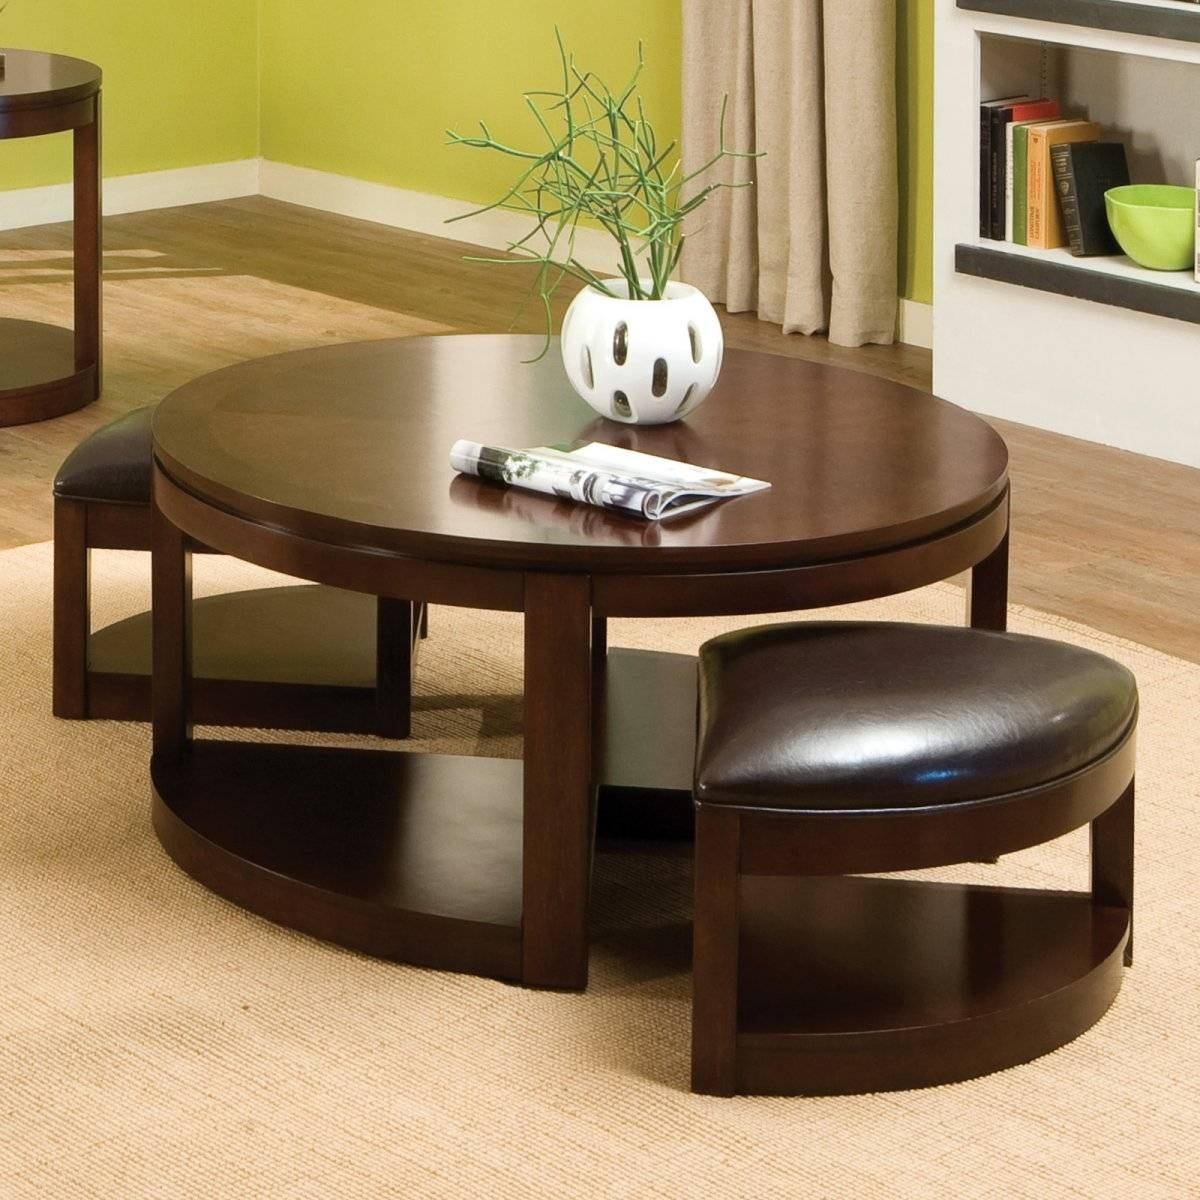 Amazing Round Coffee Tables With Storage Pics Ideas – Tikspor In Coffee Tables With Seating And Storage (View 1 of 30)